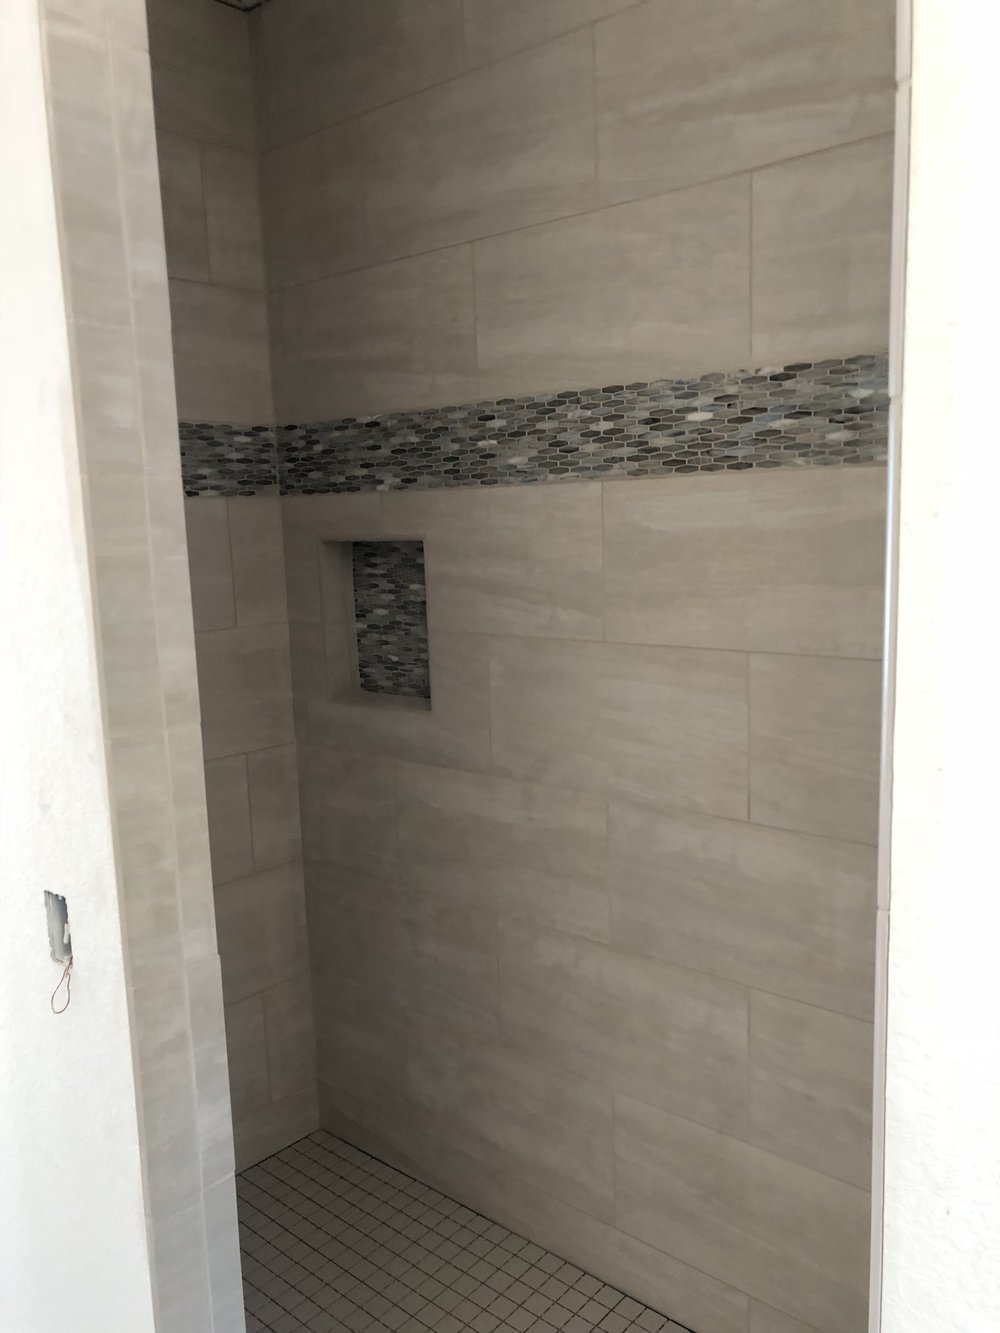 Recently completed tile work in the shower/master bath